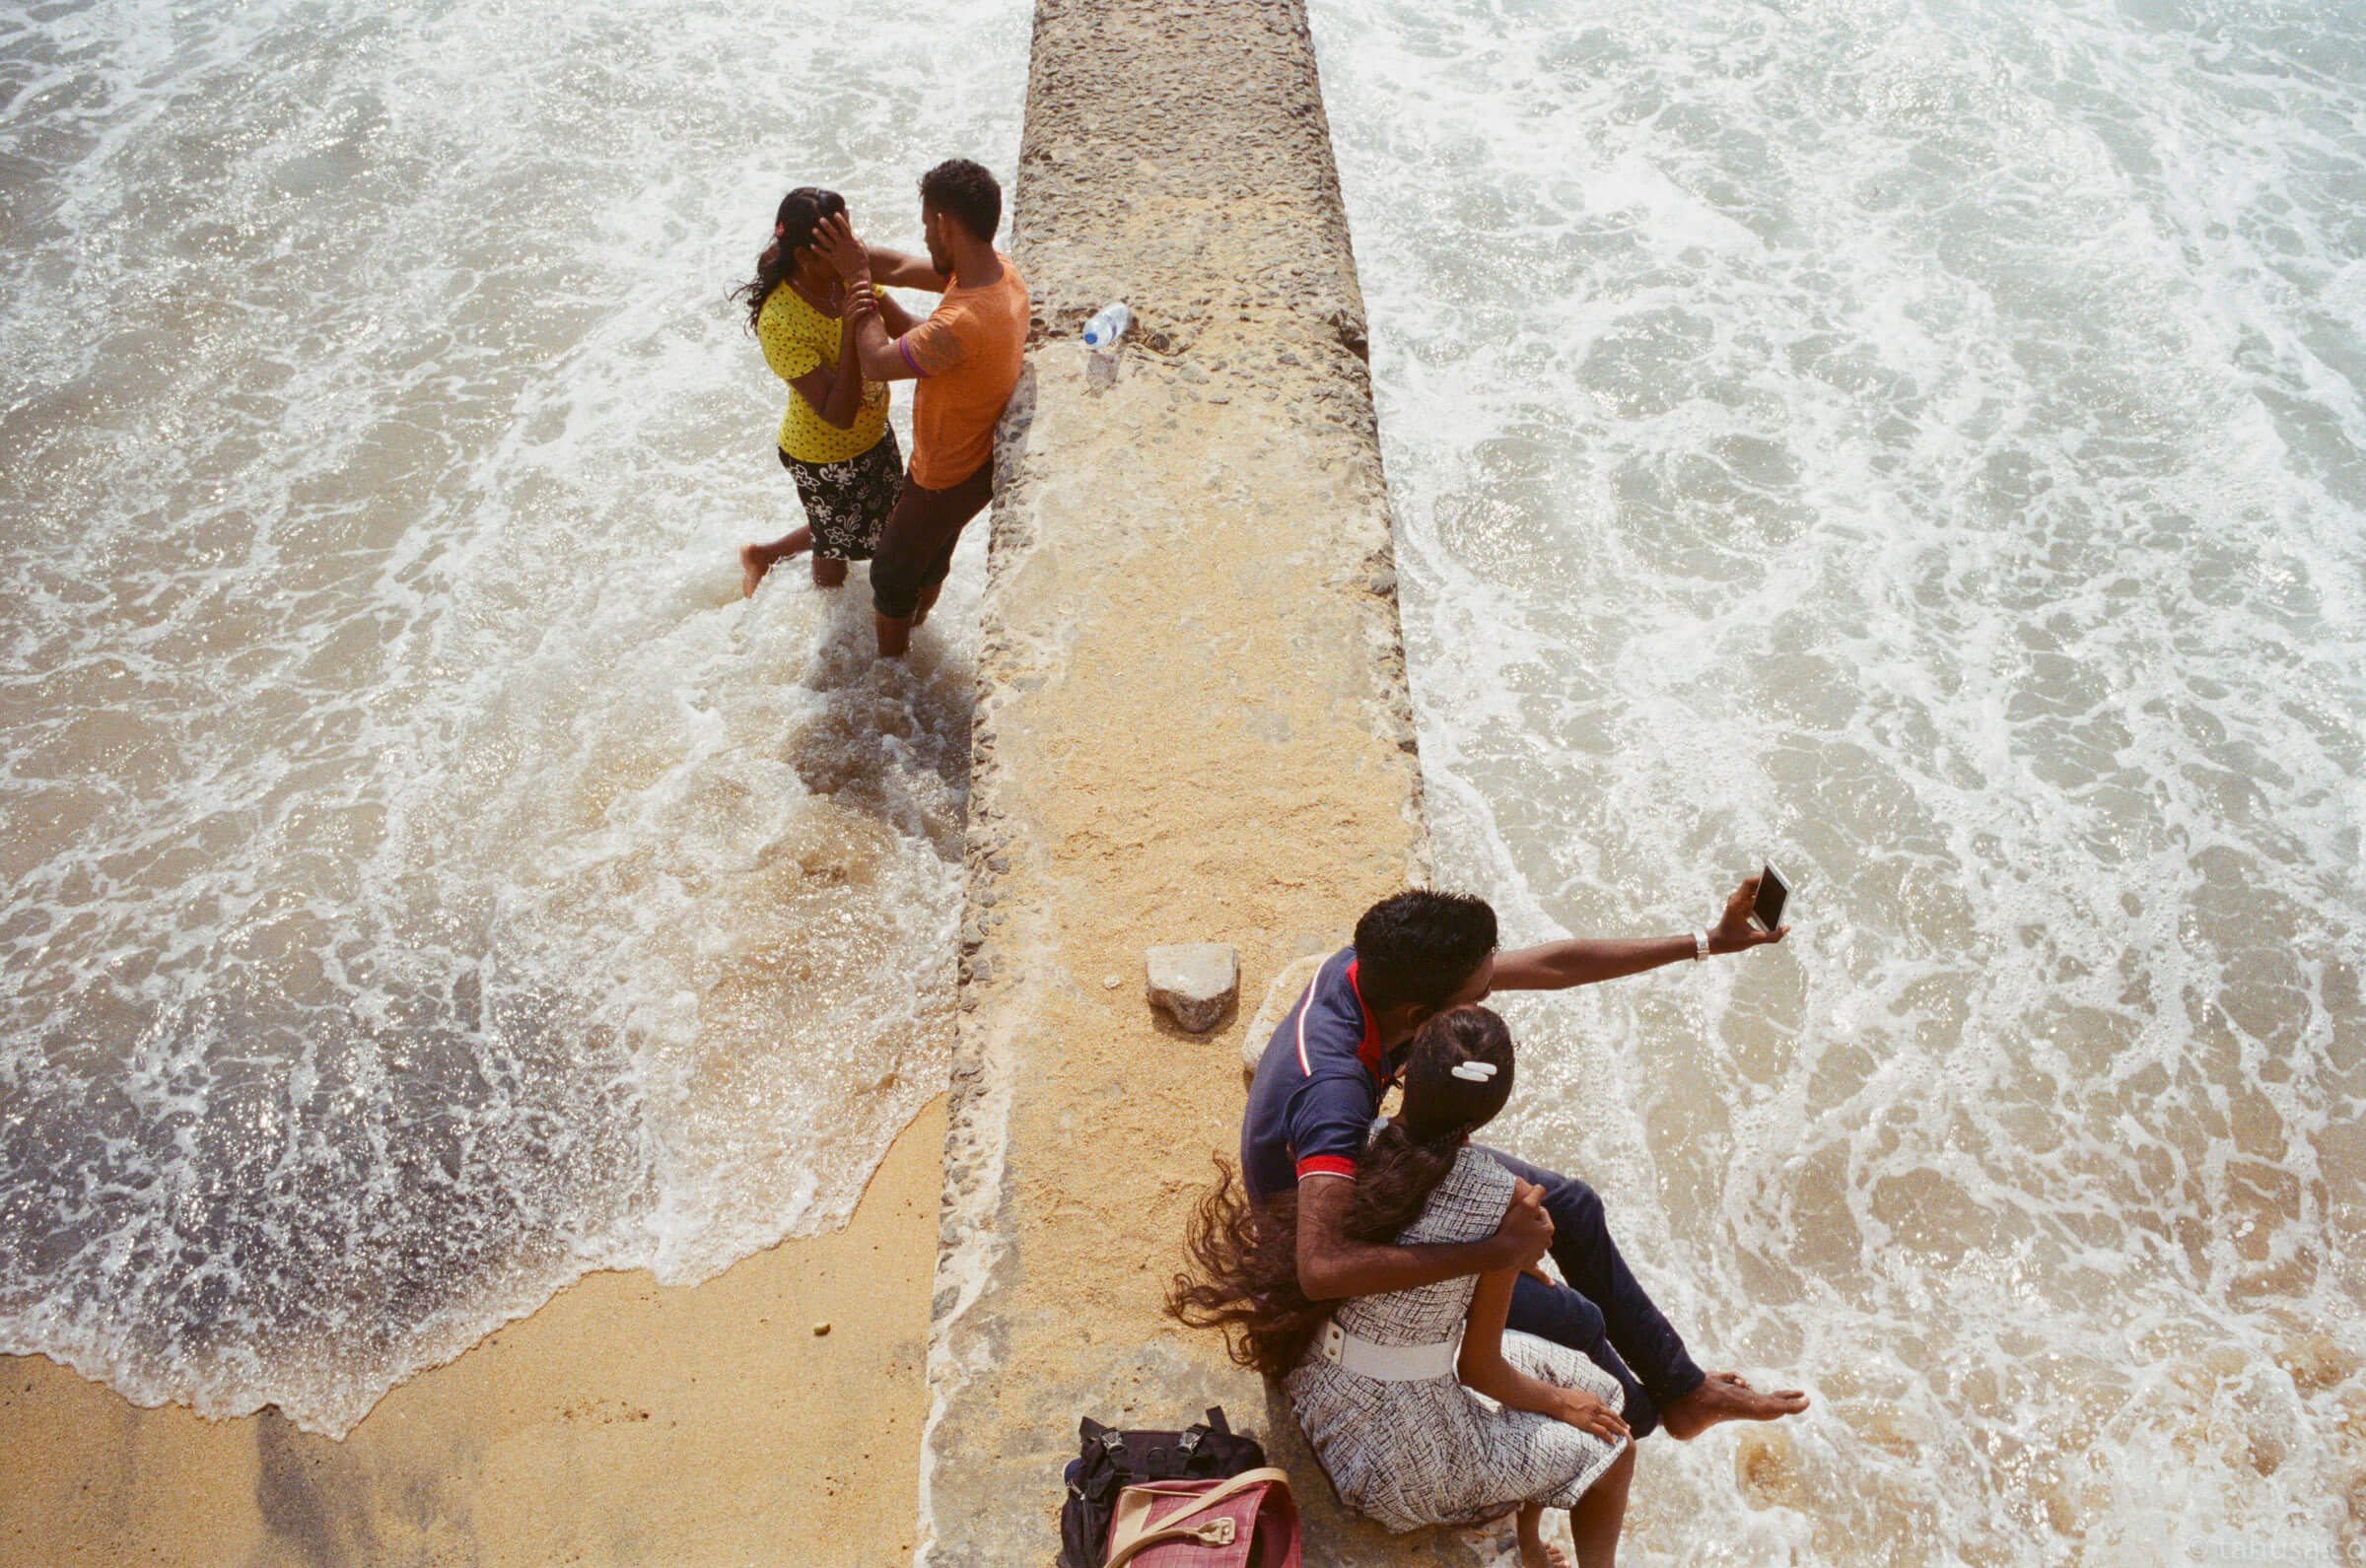 selfie-love-couple-documentary-in-sri-lanka-colombo-galle-face-green-local-life-kodak-supergold-400-iso400-Leica-summilux-35mm-f1.4-FLE-ASPH